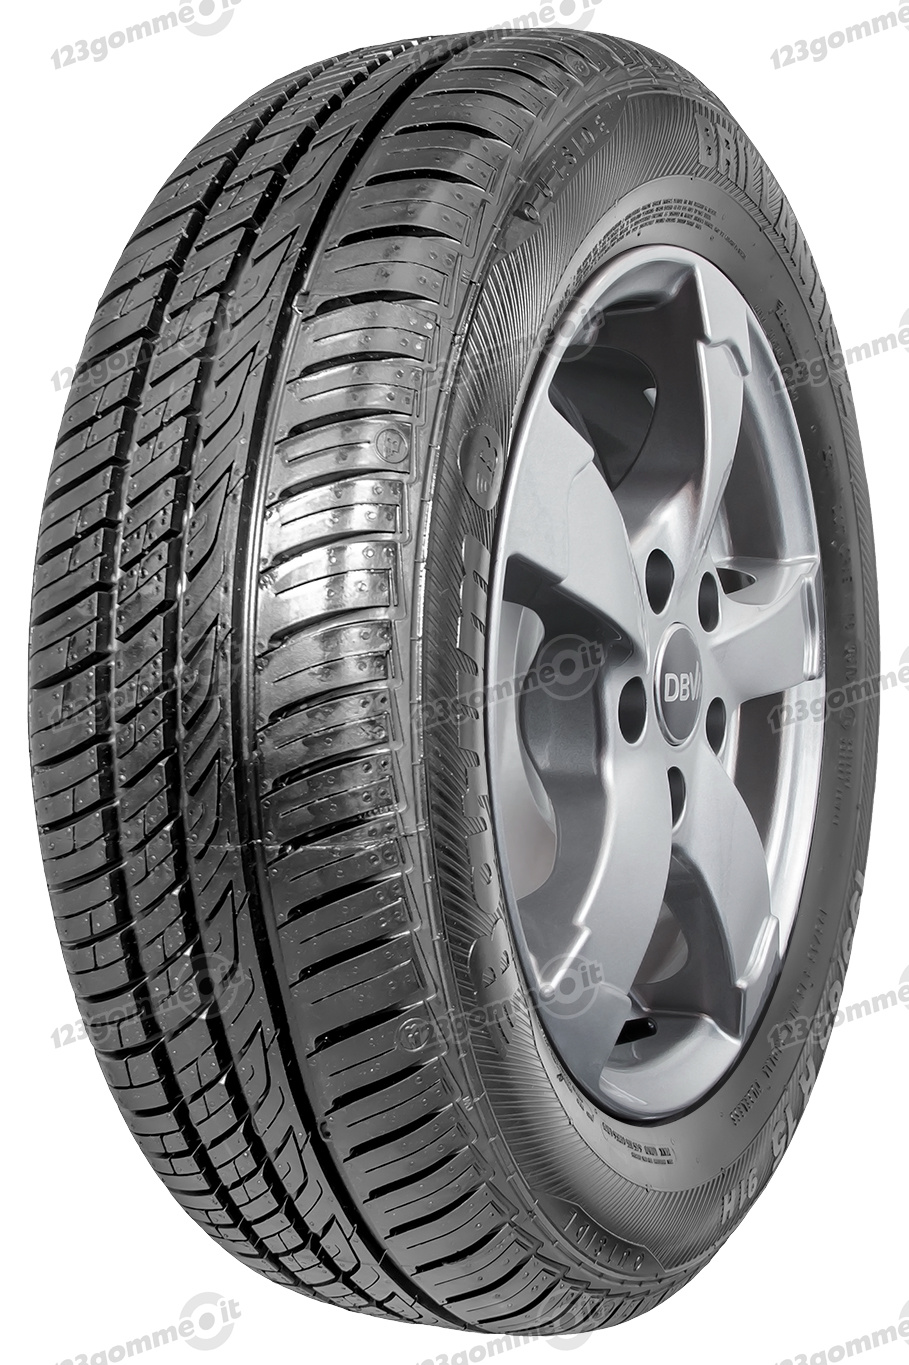 175/65 R14 86T Brillantis 2 XL  Brillantis 2 XL